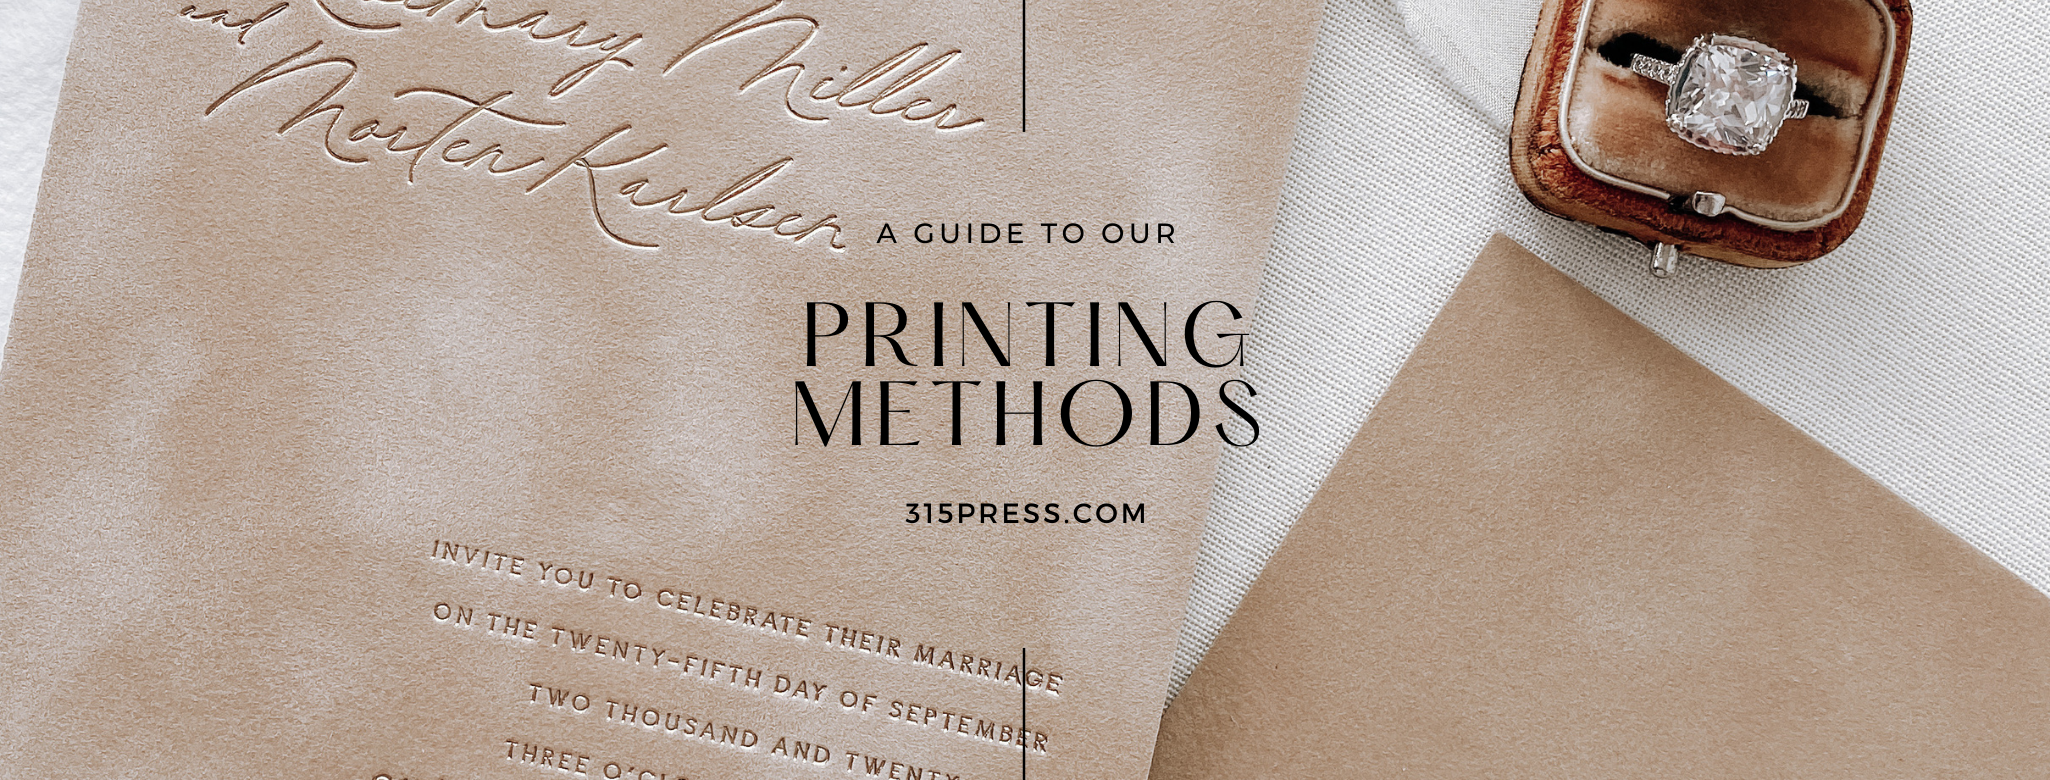 A Guide to the Printing Methods we provide